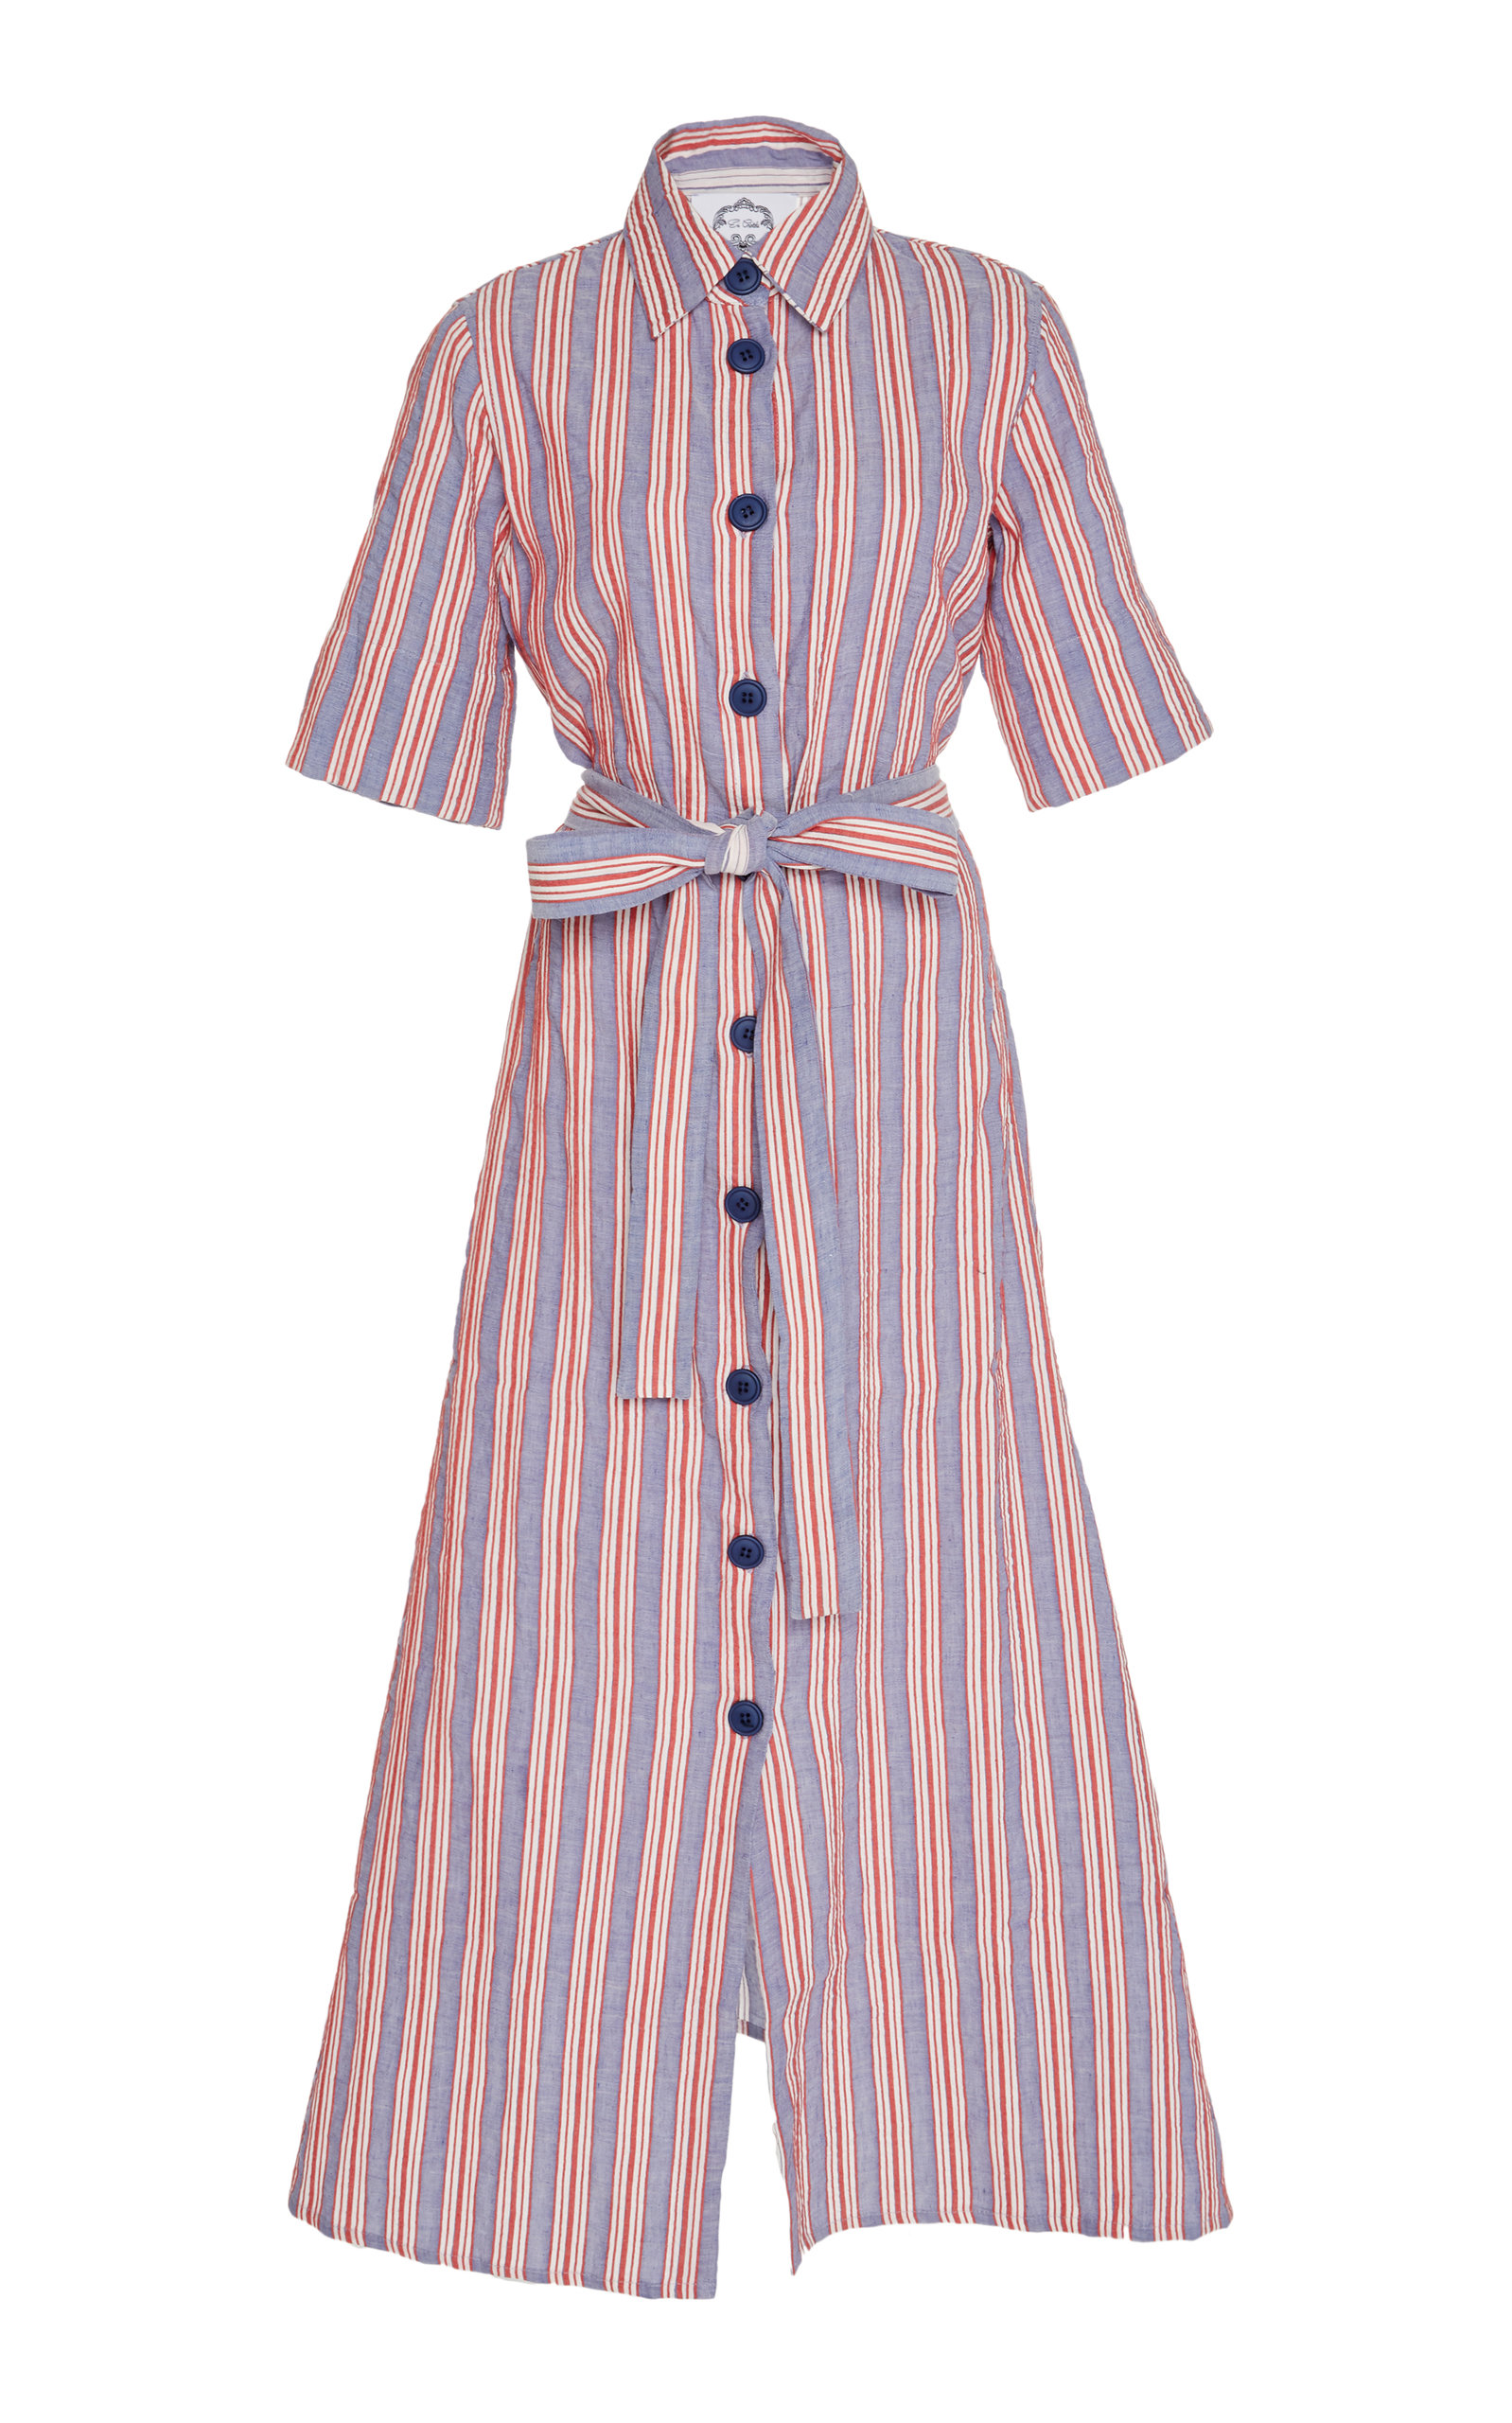 5e100fc38dcf Valerie Striped Cotton Midi Shirt Dress by Evi Grintela